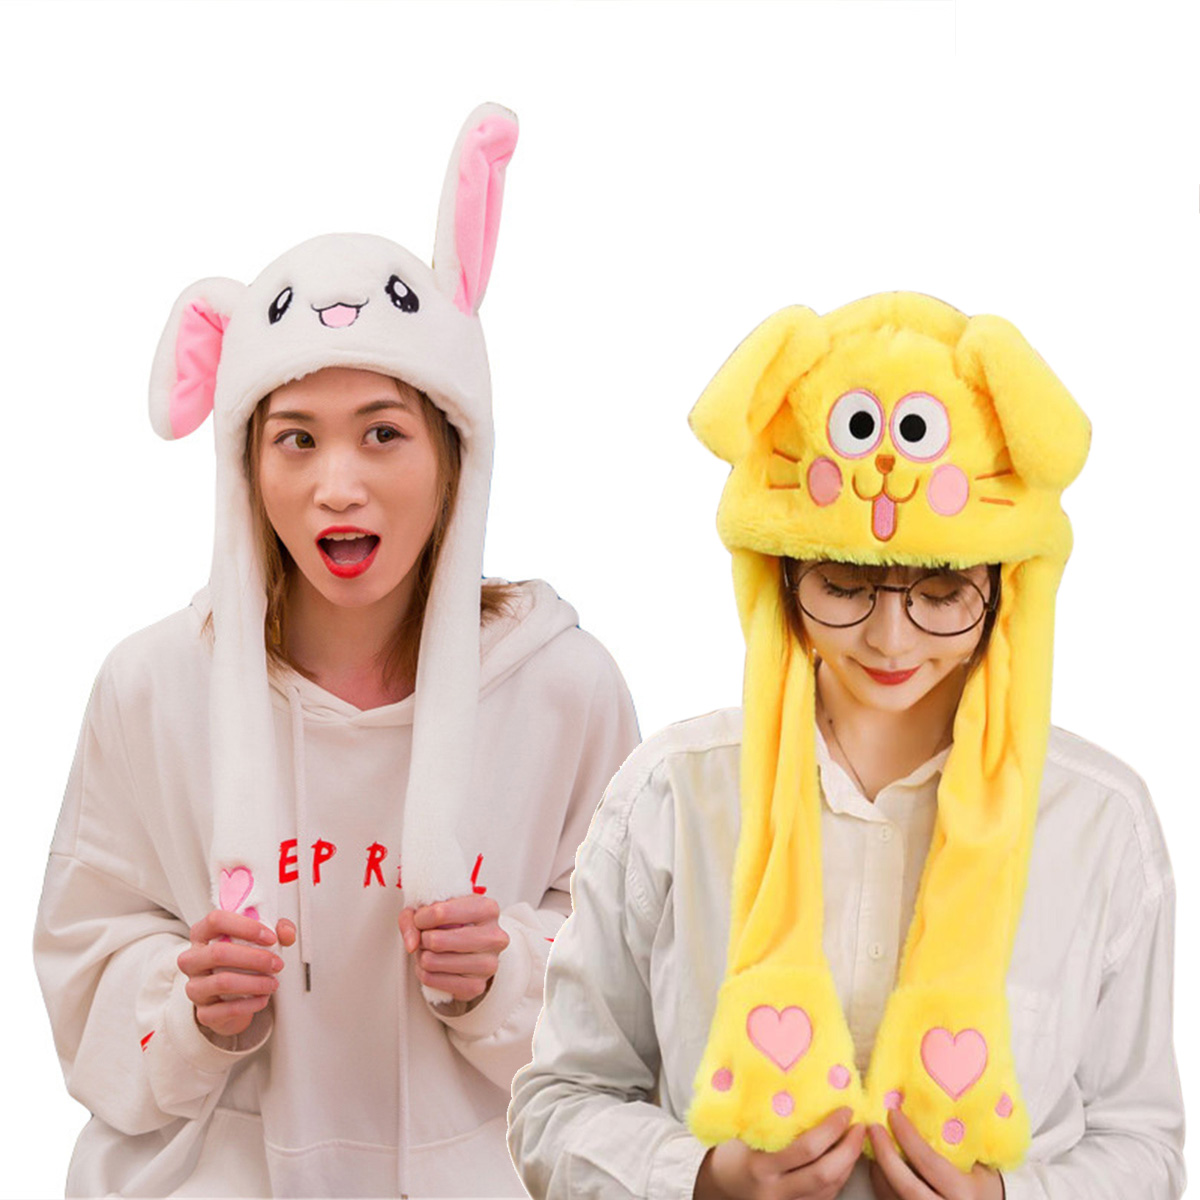 617c1da73 Details about Cute Rabbit Hat Ear Will Move When You Hold The Leg Funny  Plush Hat Chic Hot NEW